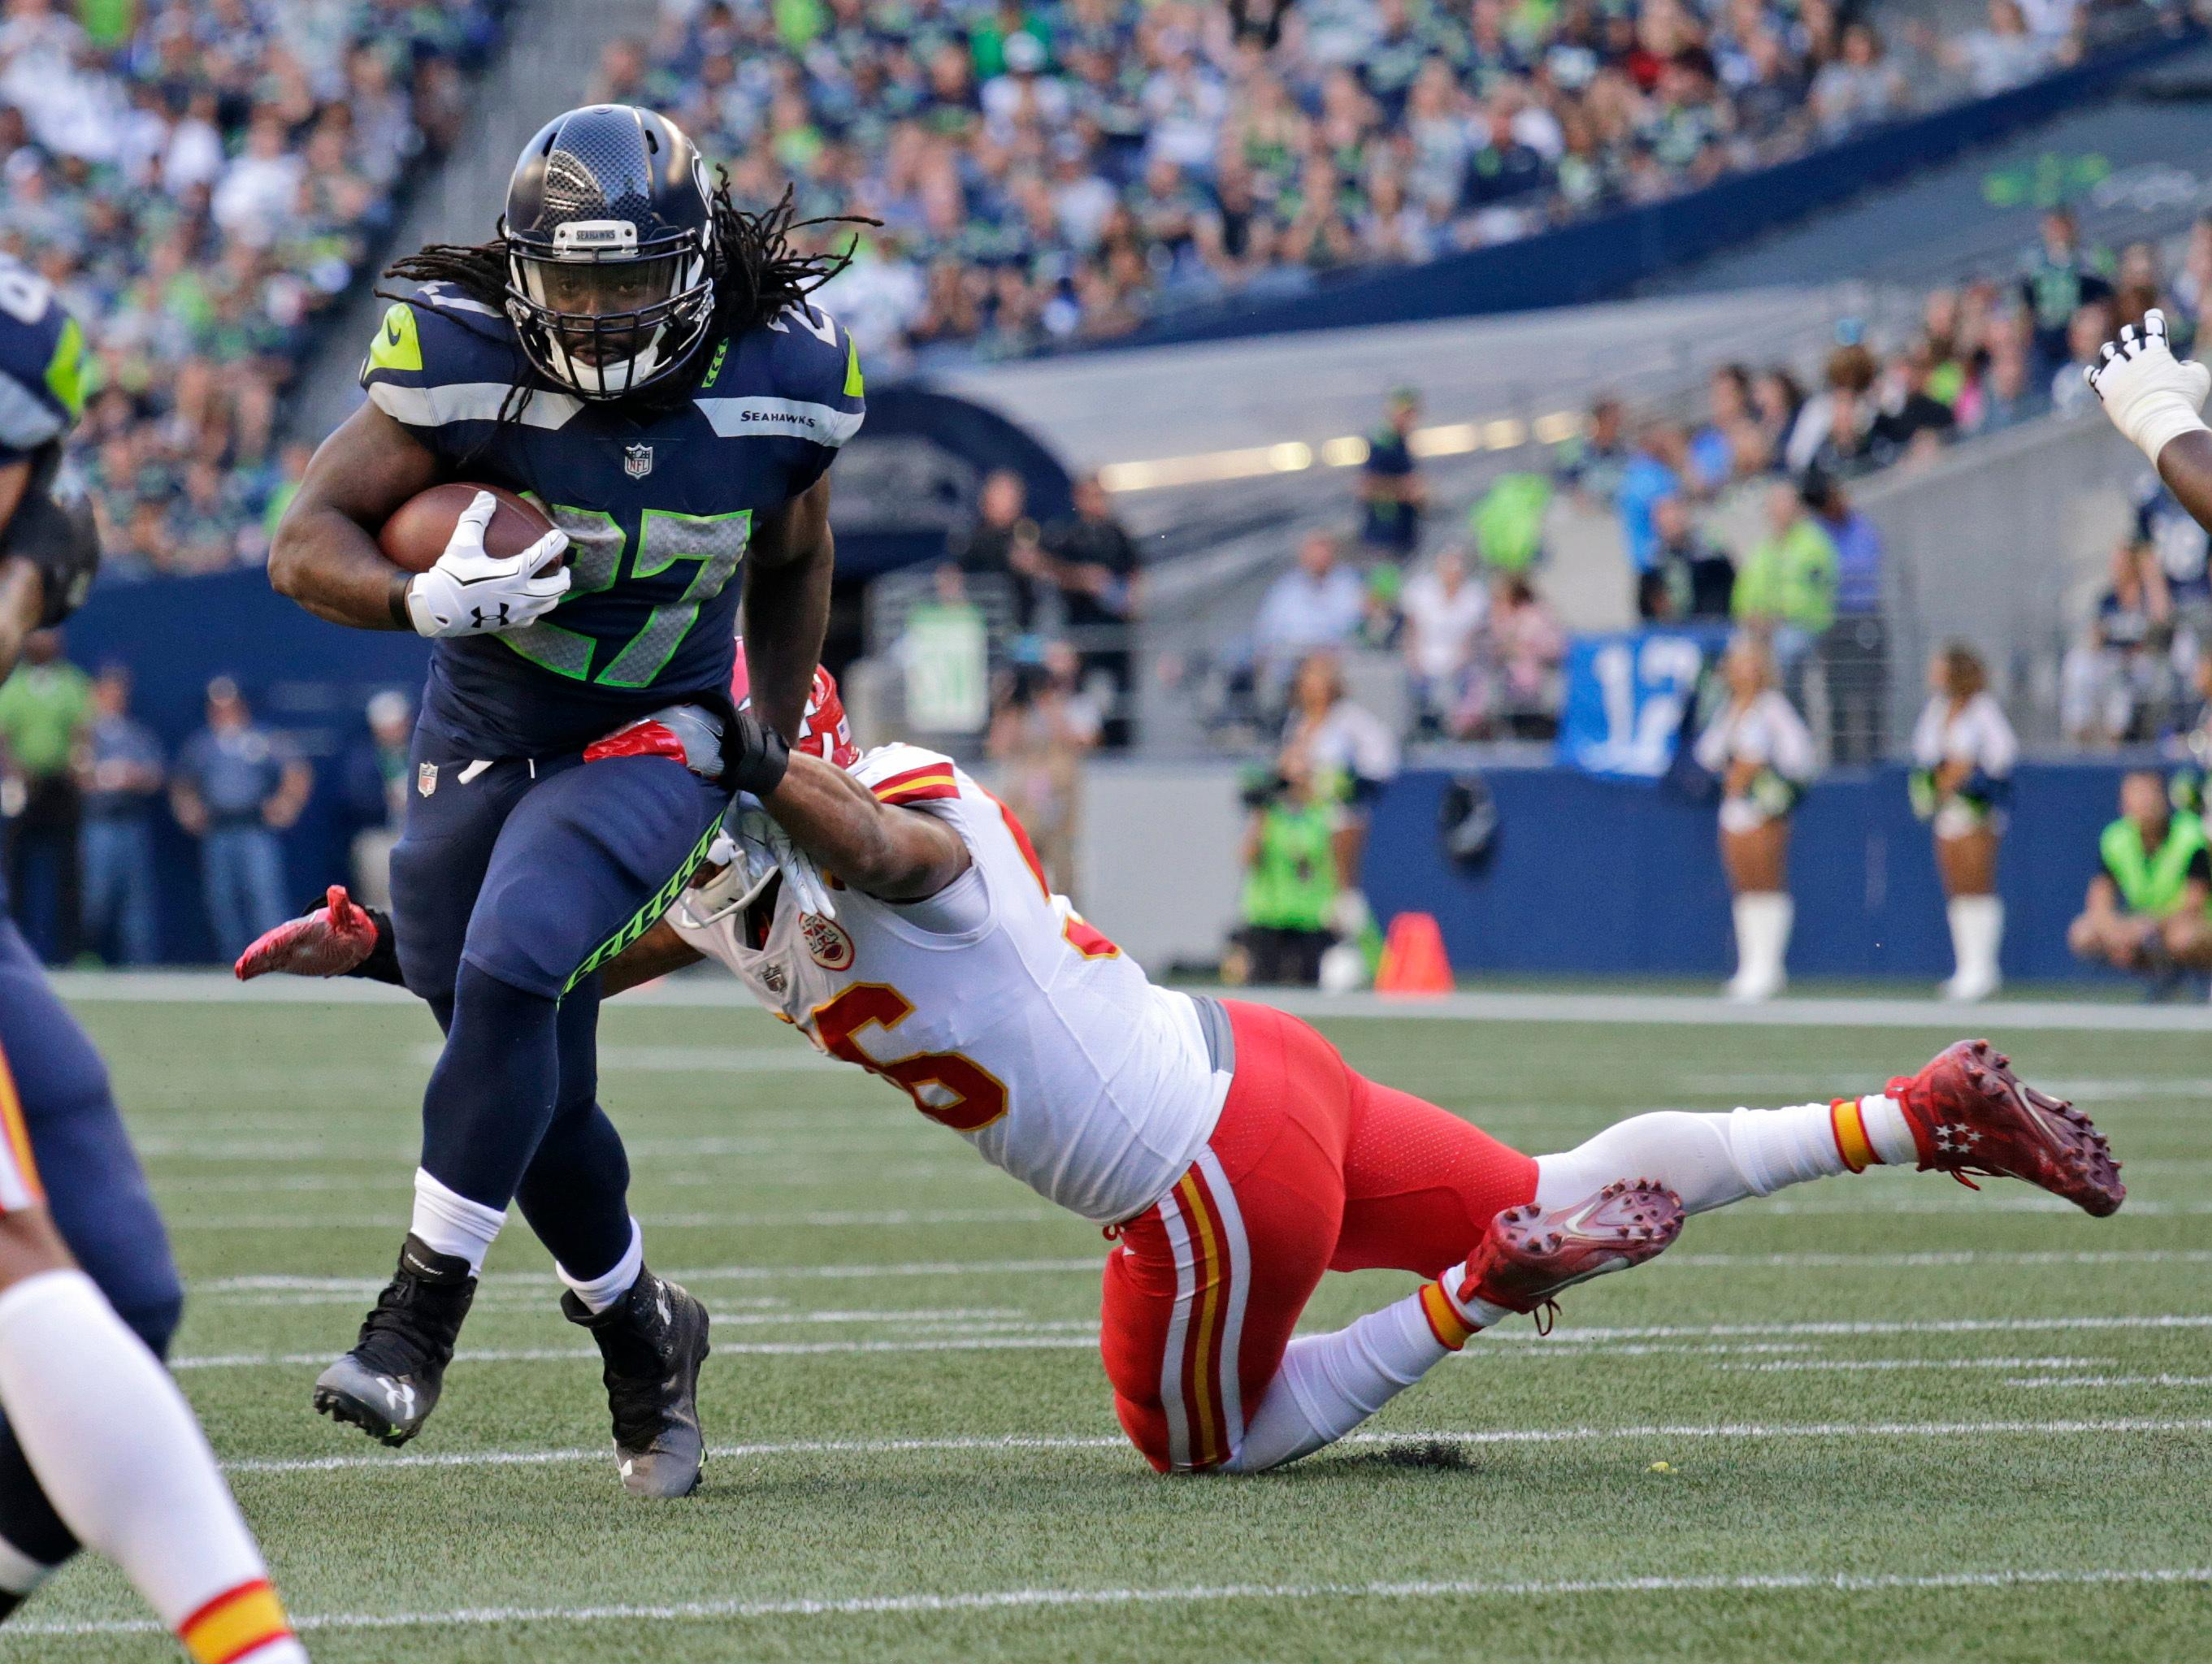 Seattle Seahawks running back Eddie Lacy, left, breaks a tackle by Kansas City Chiefs inside linebacker Derrick Johnson, right, during the first half of an NFL football preseason game, Friday, Aug. 25, 2017, in Seattle. (AP Photo/John Froschauer)